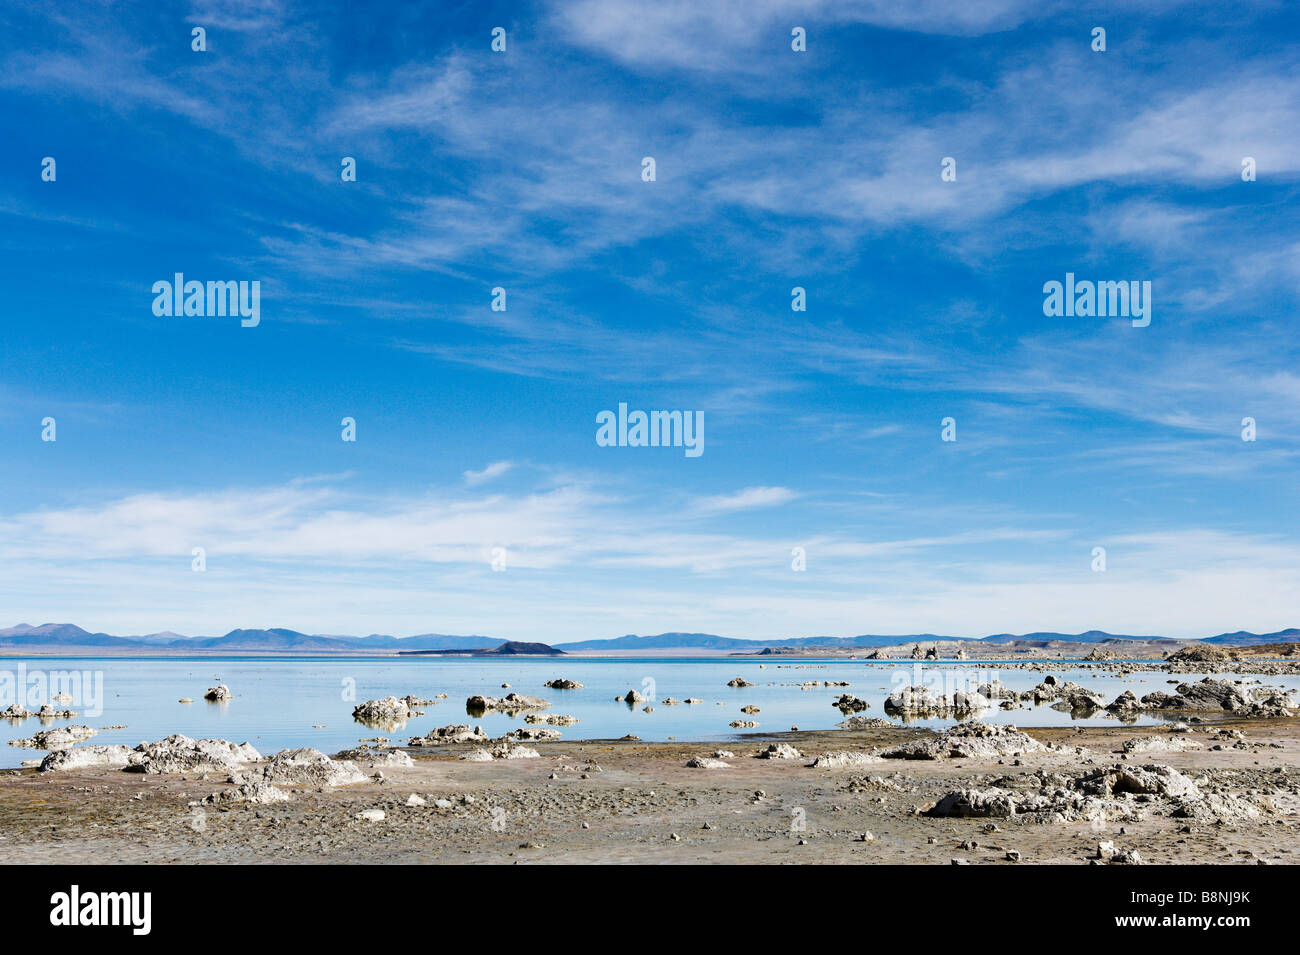 Tufa formations in Mono Lake just off US Highway 395, High Sierra, California, USA - Stock Image